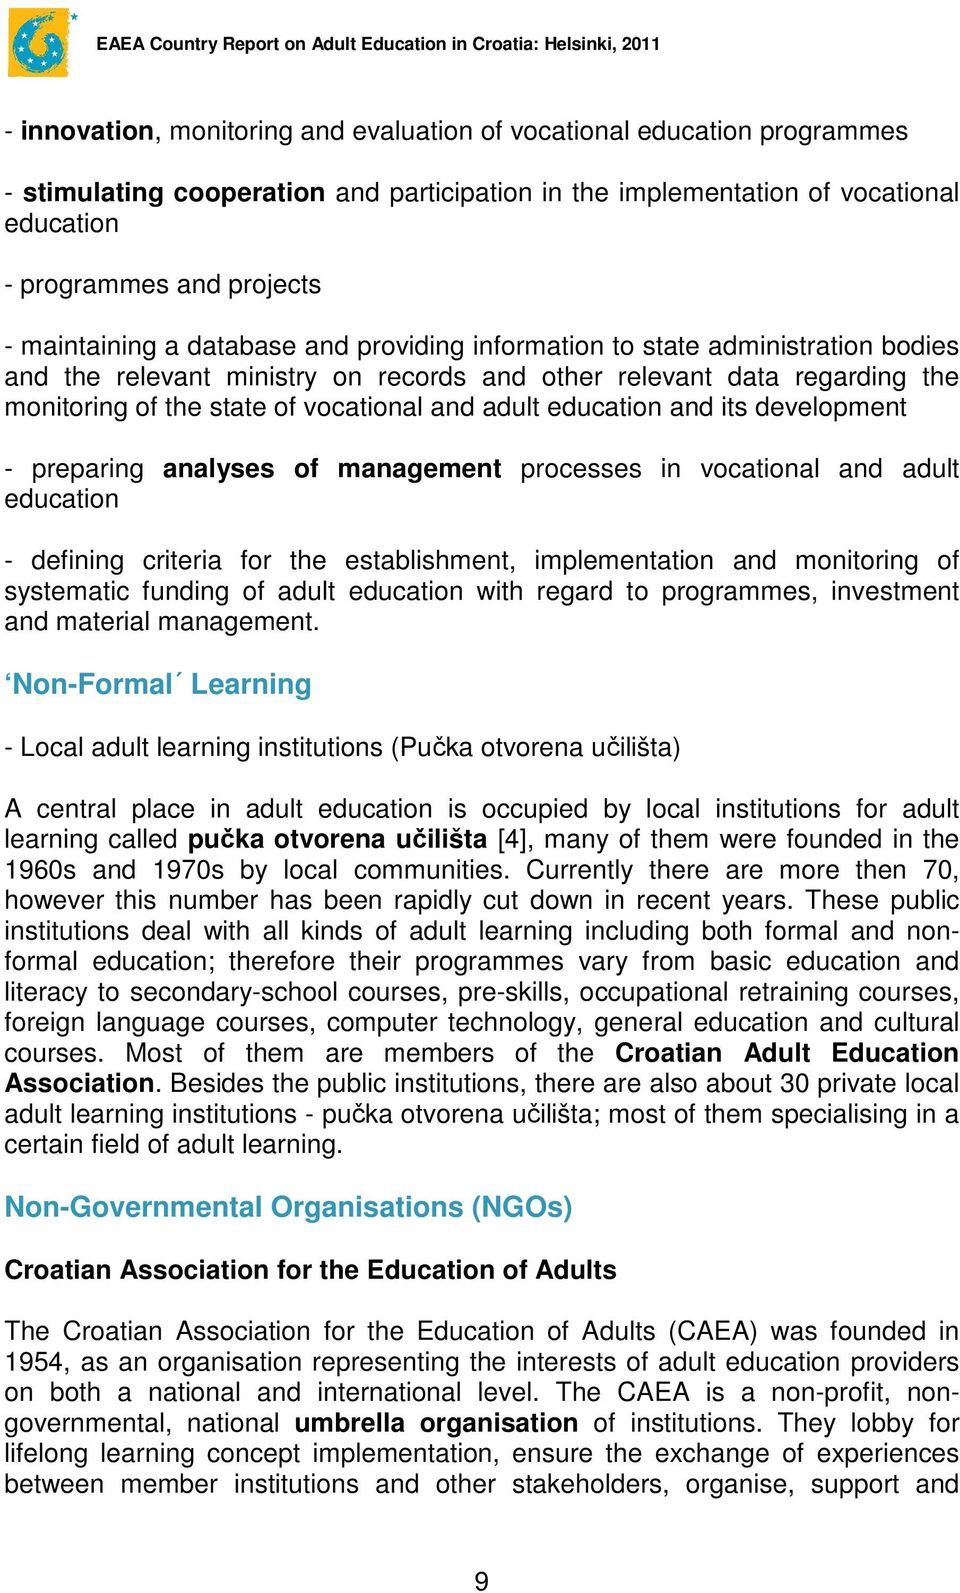 adult education and its development - preparing analyses of management processes in vocational and adult education - defining criteria for the establishment, implementation and monitoring of